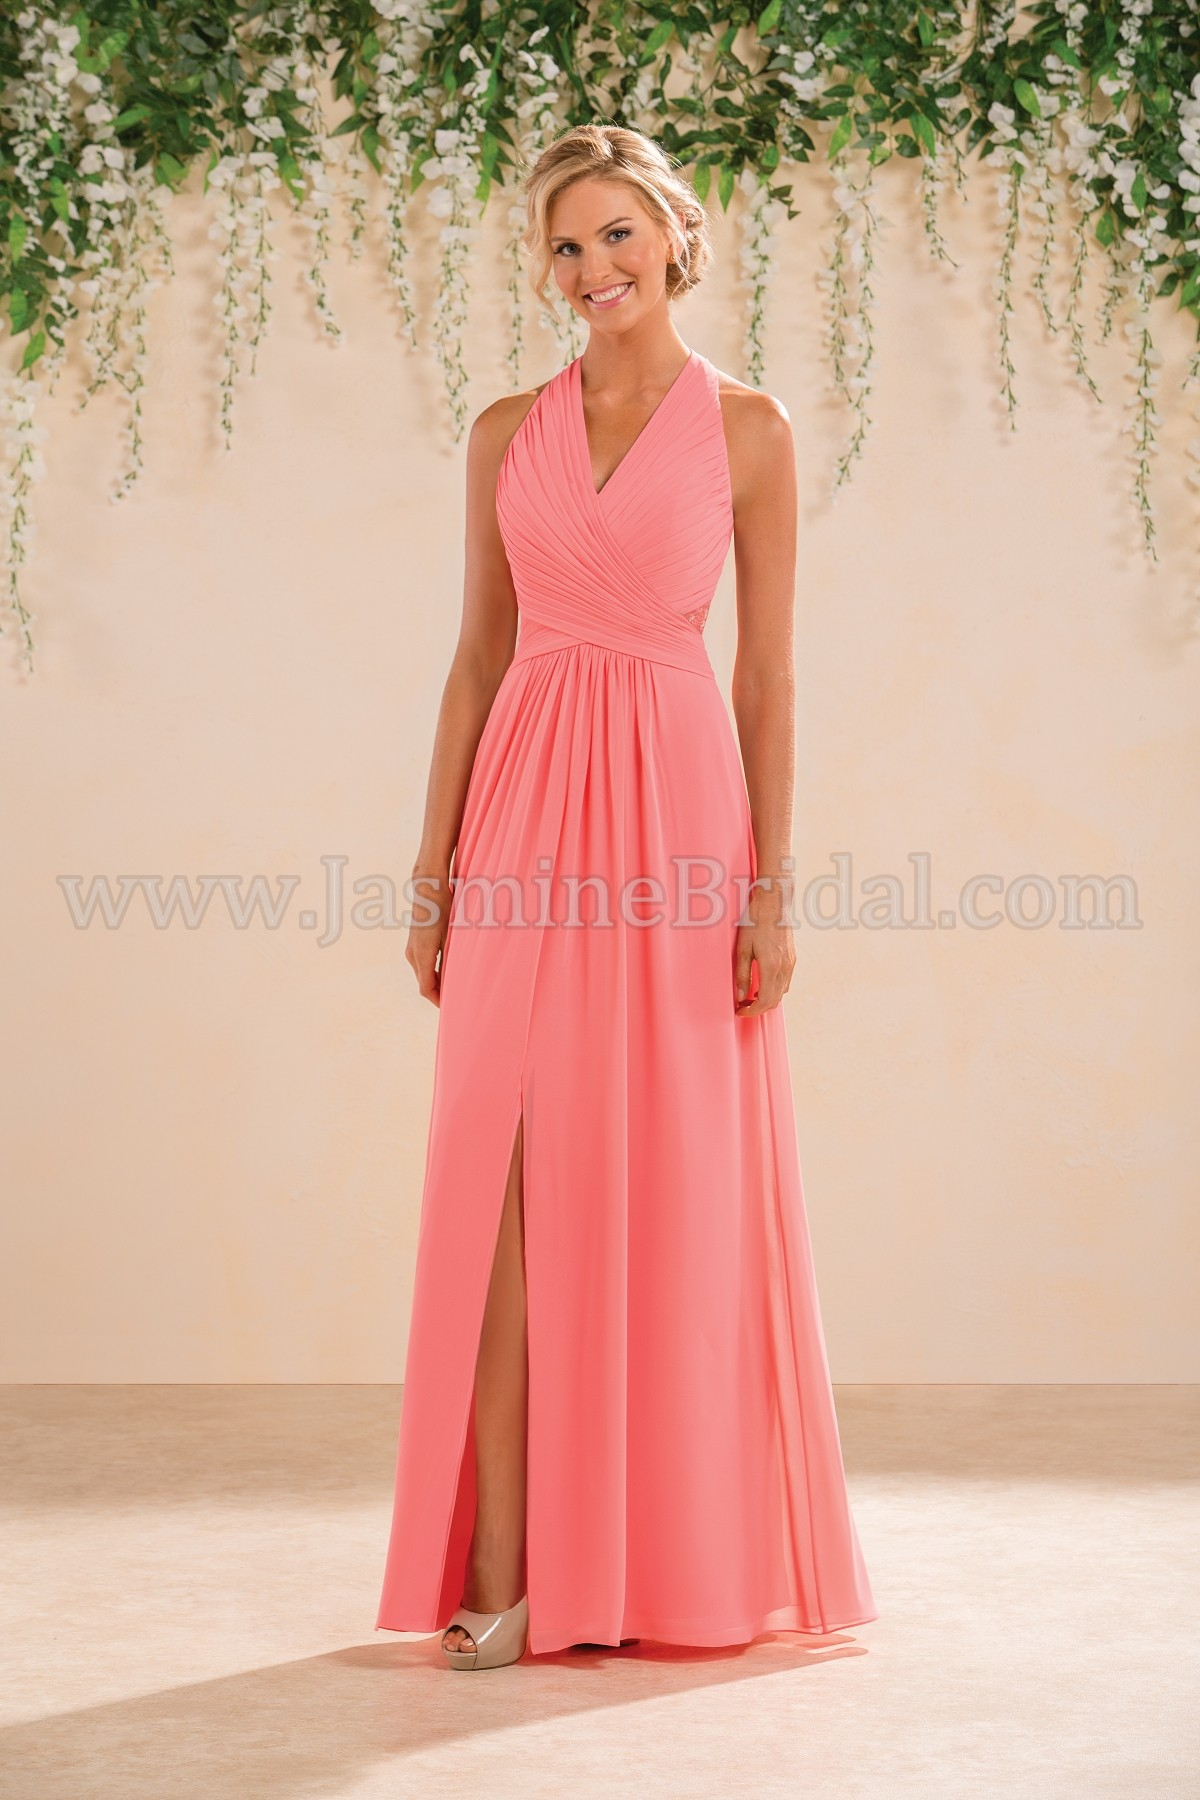 bridesmaid-dresses-B183008-F